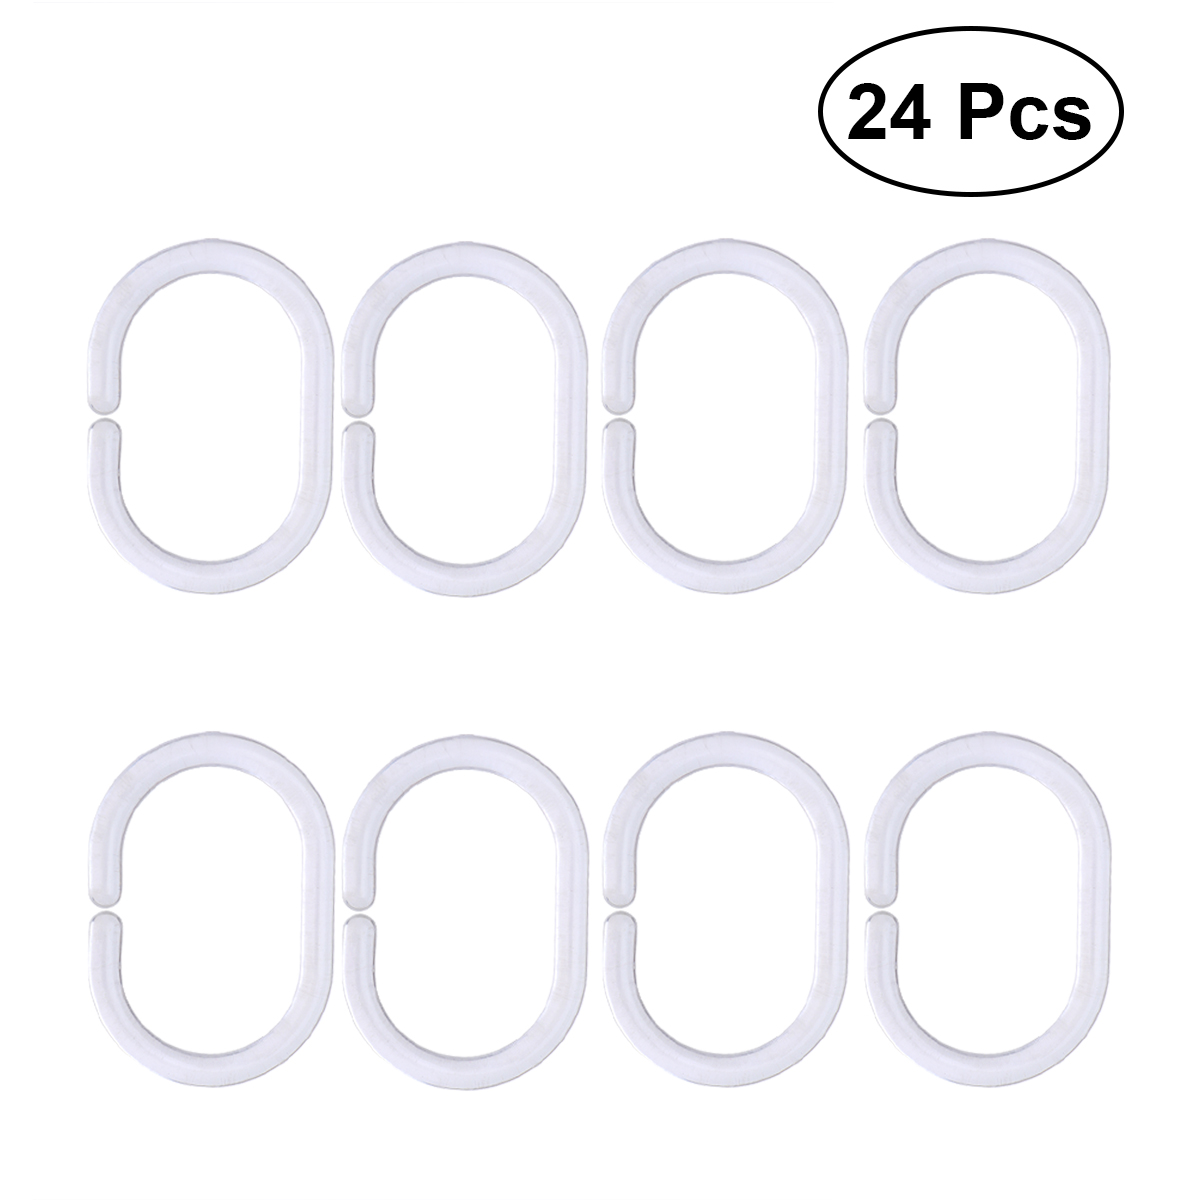 Us 2 54 45 Off 24pcs Clear Plastic Shower Curtain Rings C Shape Hooks Shower Curtain Hook Hanger Plastic Ring Bath Drape Loop Clasp In Shower